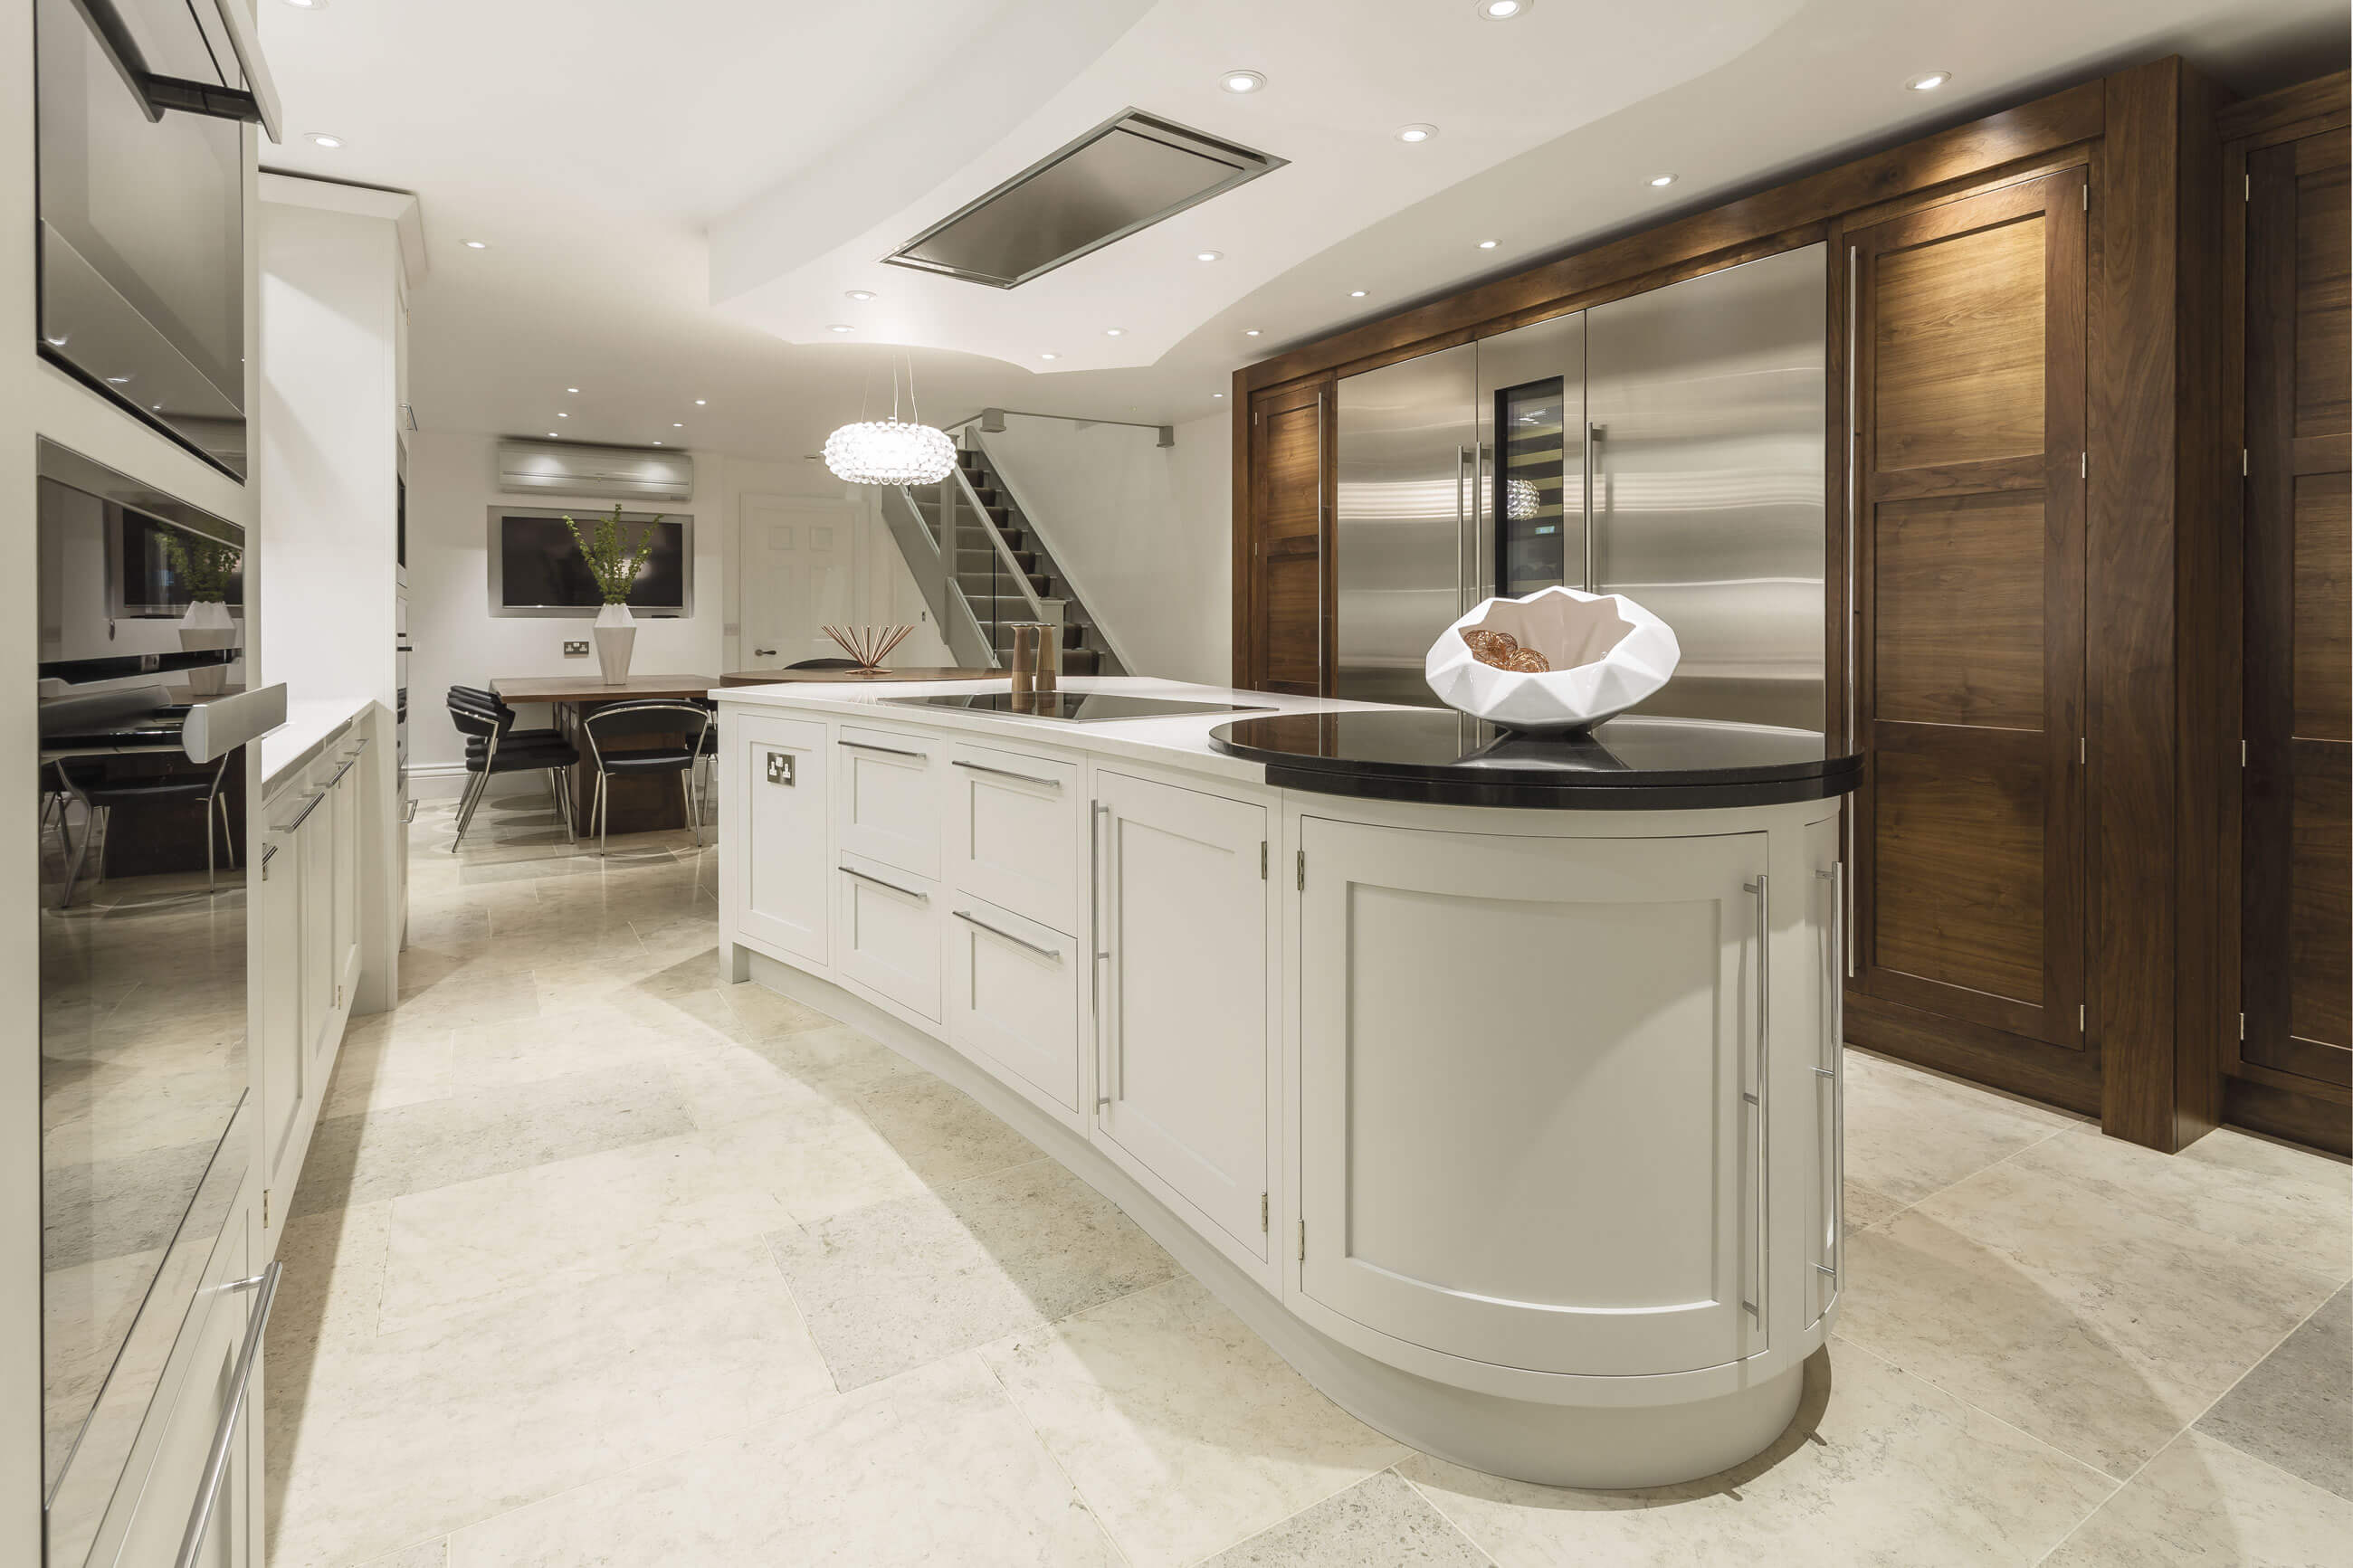 Perfect kitchen tom howley for The perfect kitchen menu